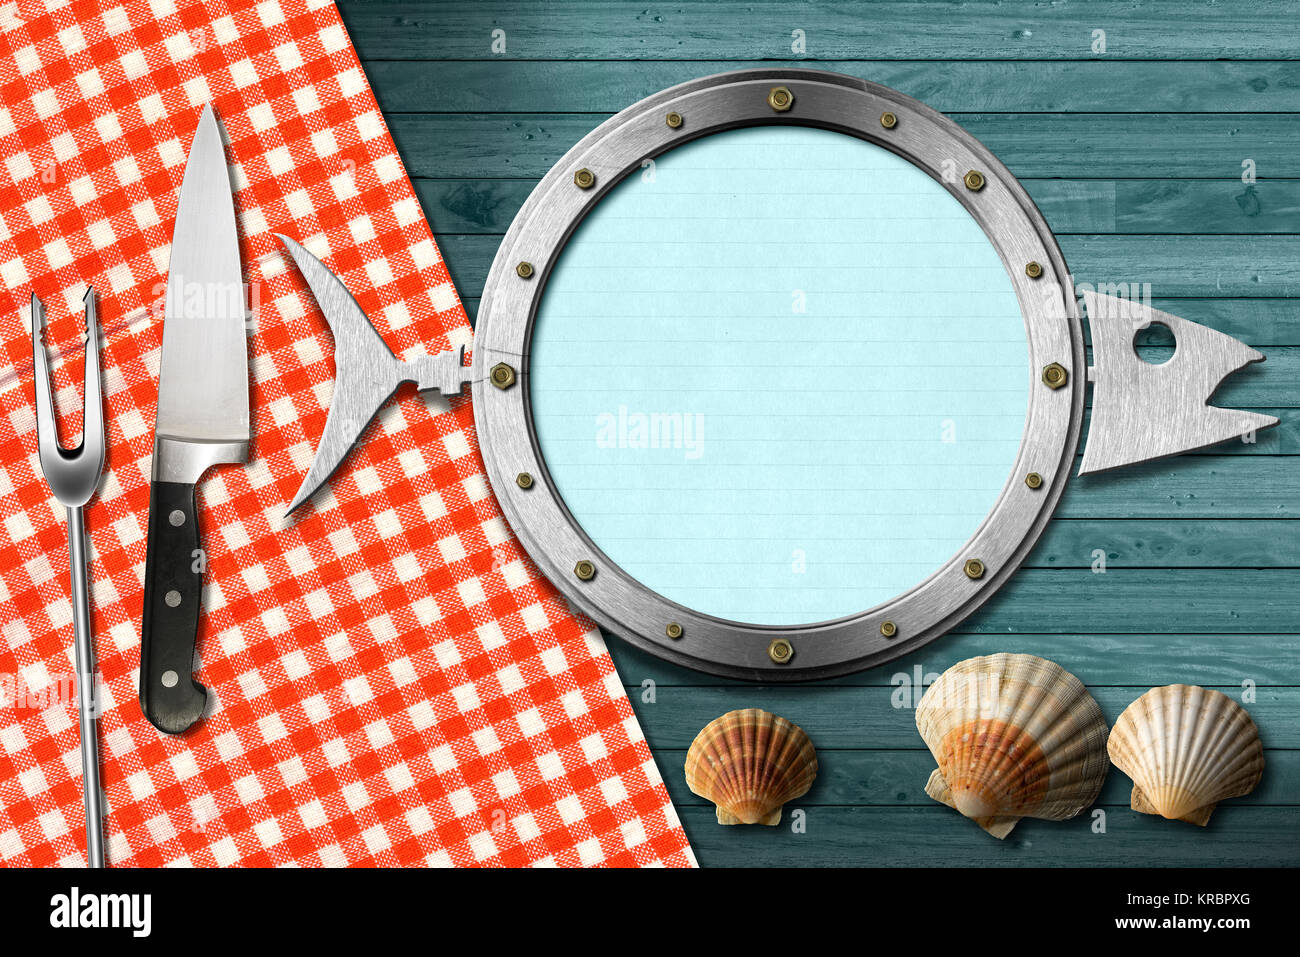 Restaurant seafood menu with metal porthole, kitchen utensils Stock ...